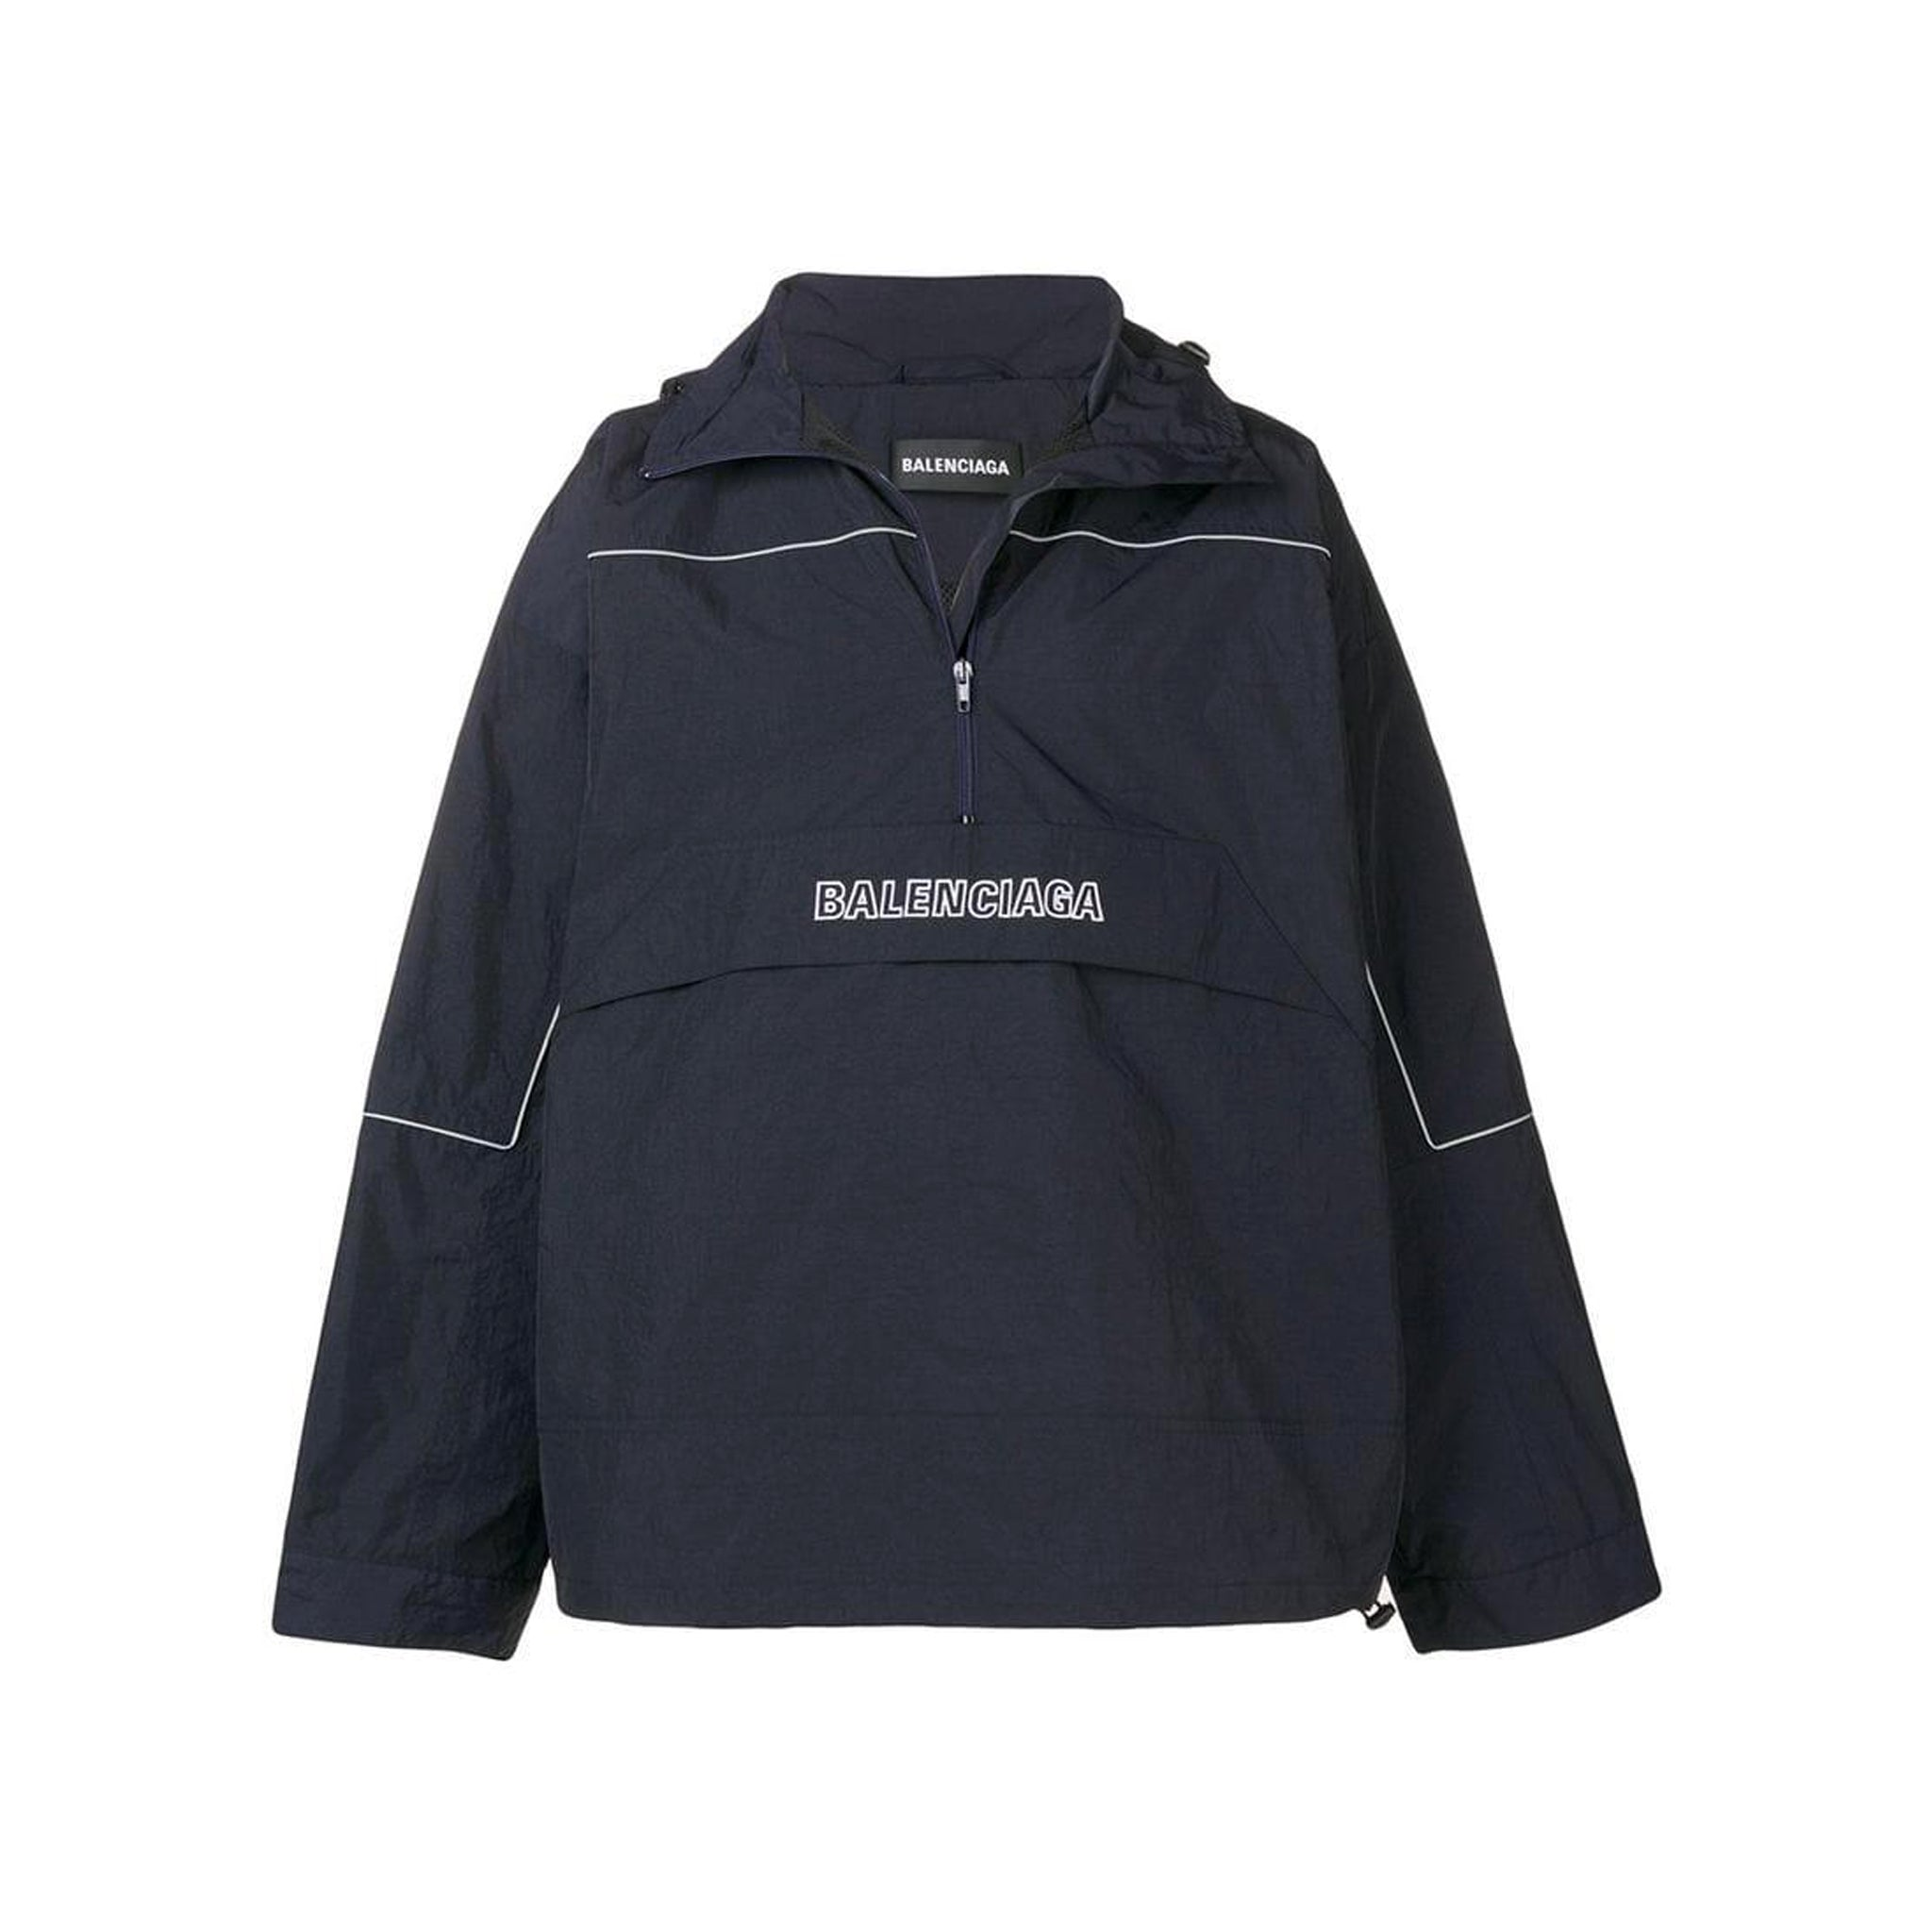 Balenciaga Windbreaker Logo Jacket